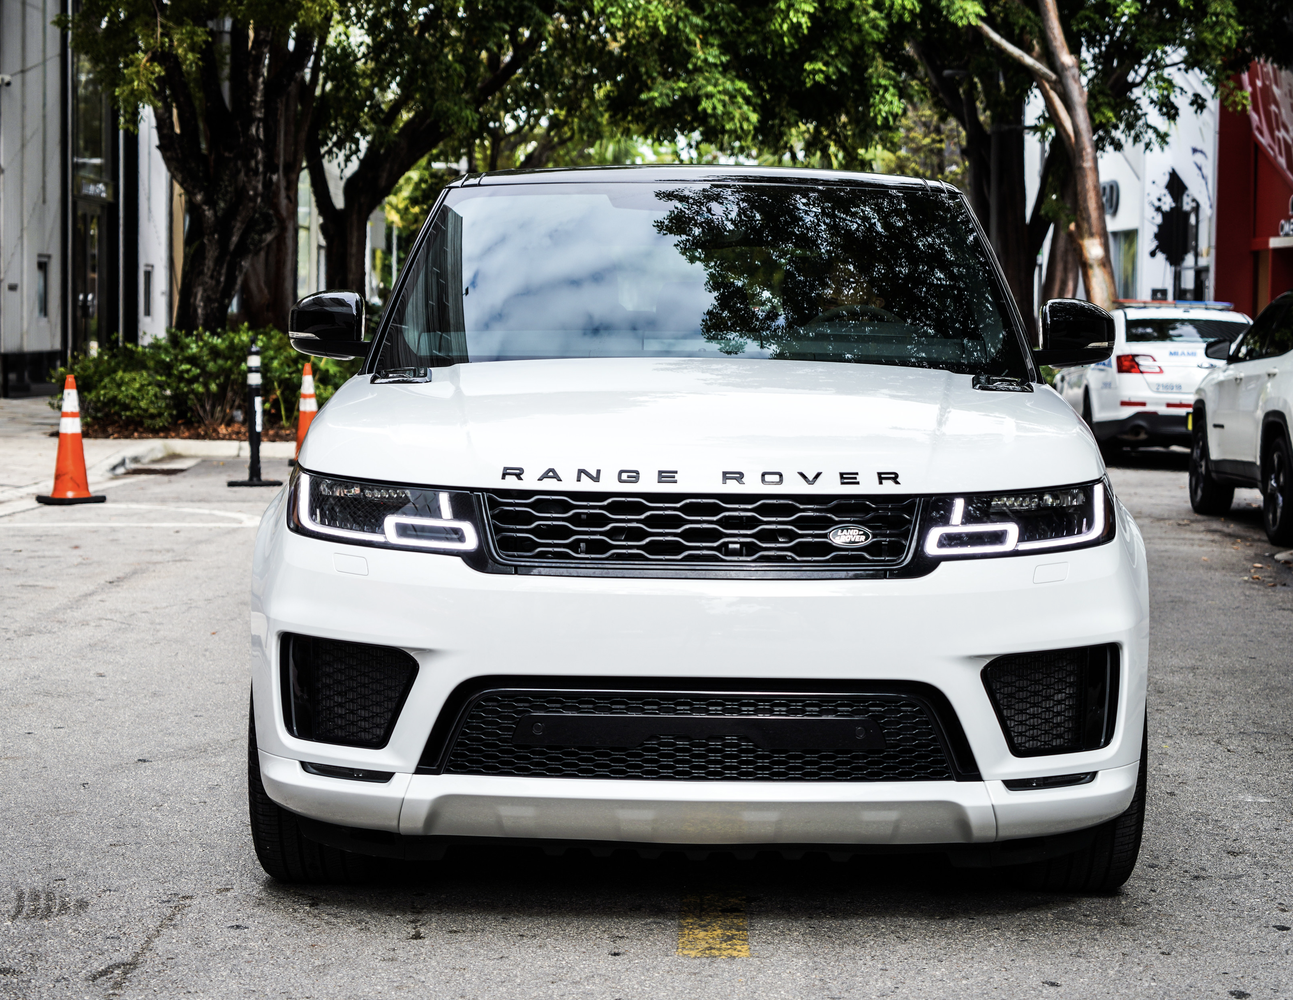 Image #4 of our  Range Rover Sport 22 White    In Miami Fort Lauderdale Palm Beach South Florida